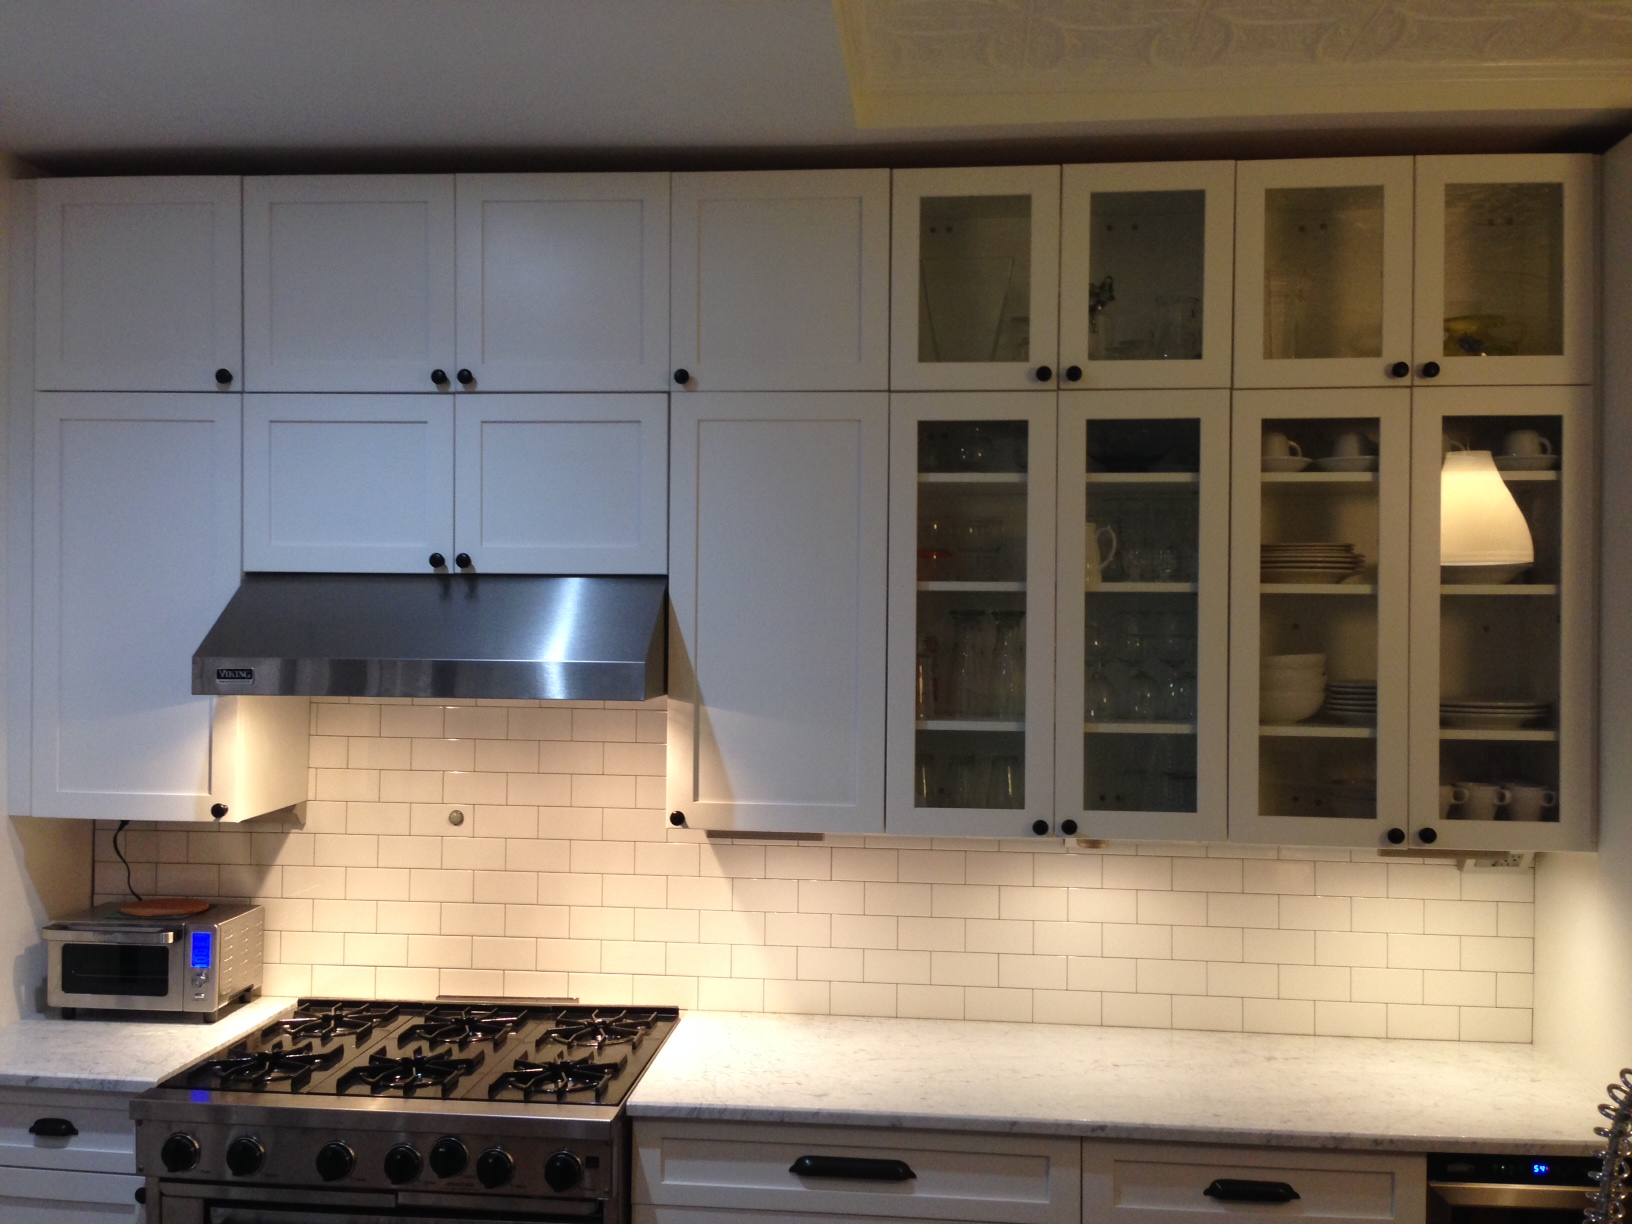 Superb Backsplash. Under Cabinet Lighting And Outlets